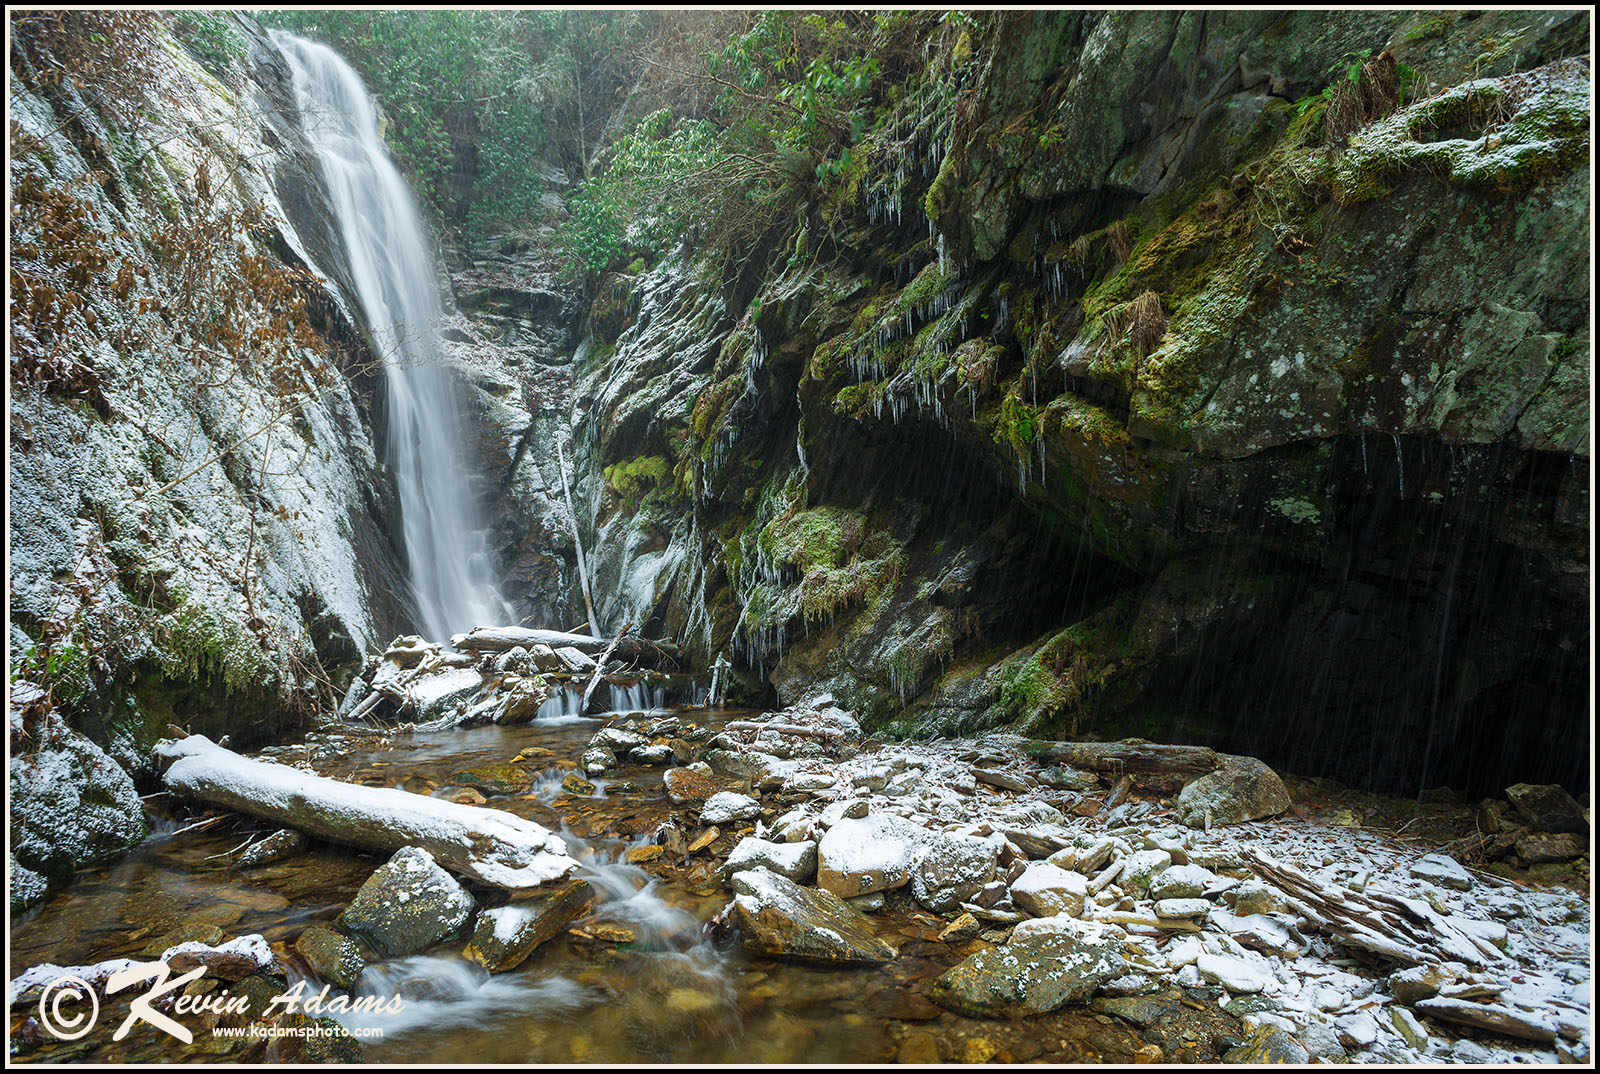 Campbell Creek Falls